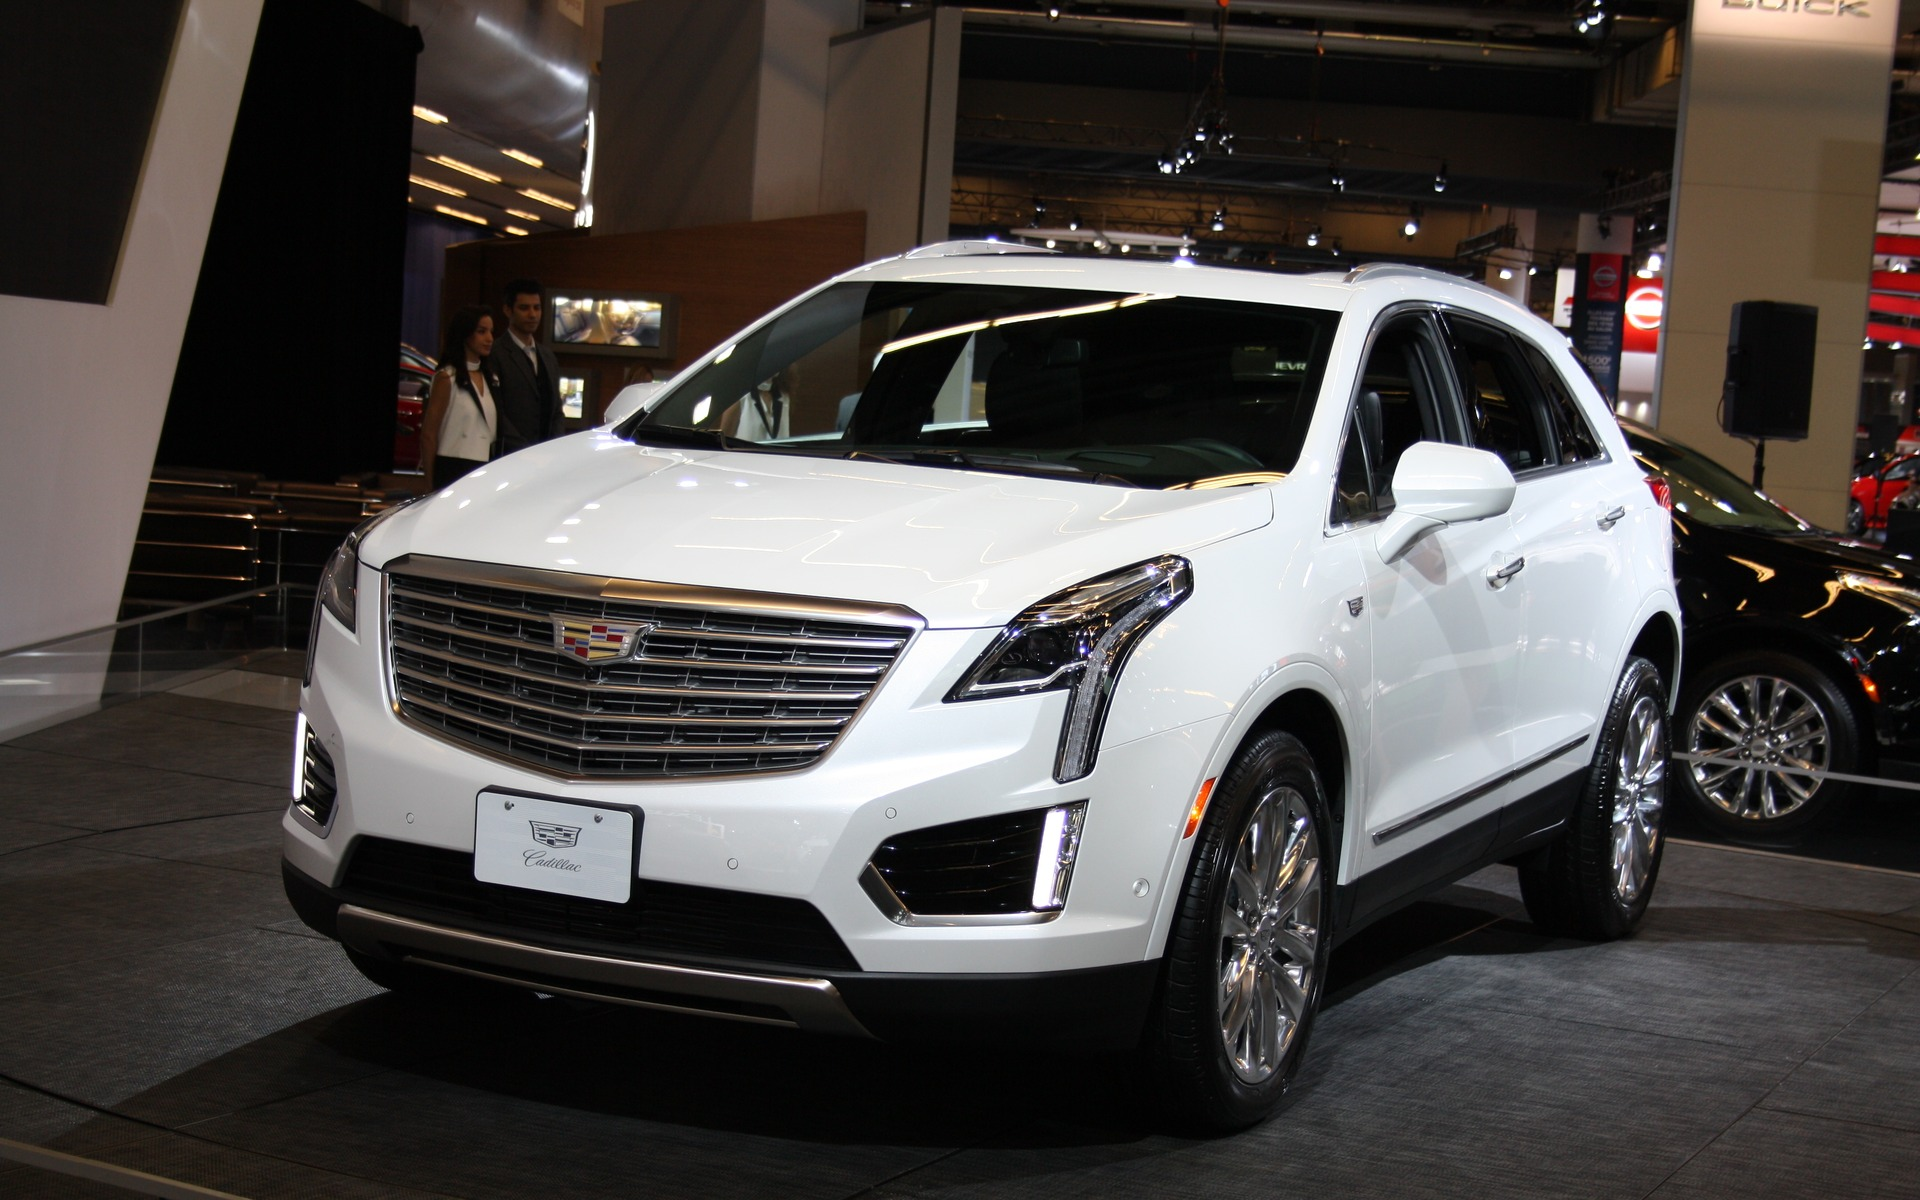 2017 cadillac xt5 the beginning of a new era the car guide. Black Bedroom Furniture Sets. Home Design Ideas